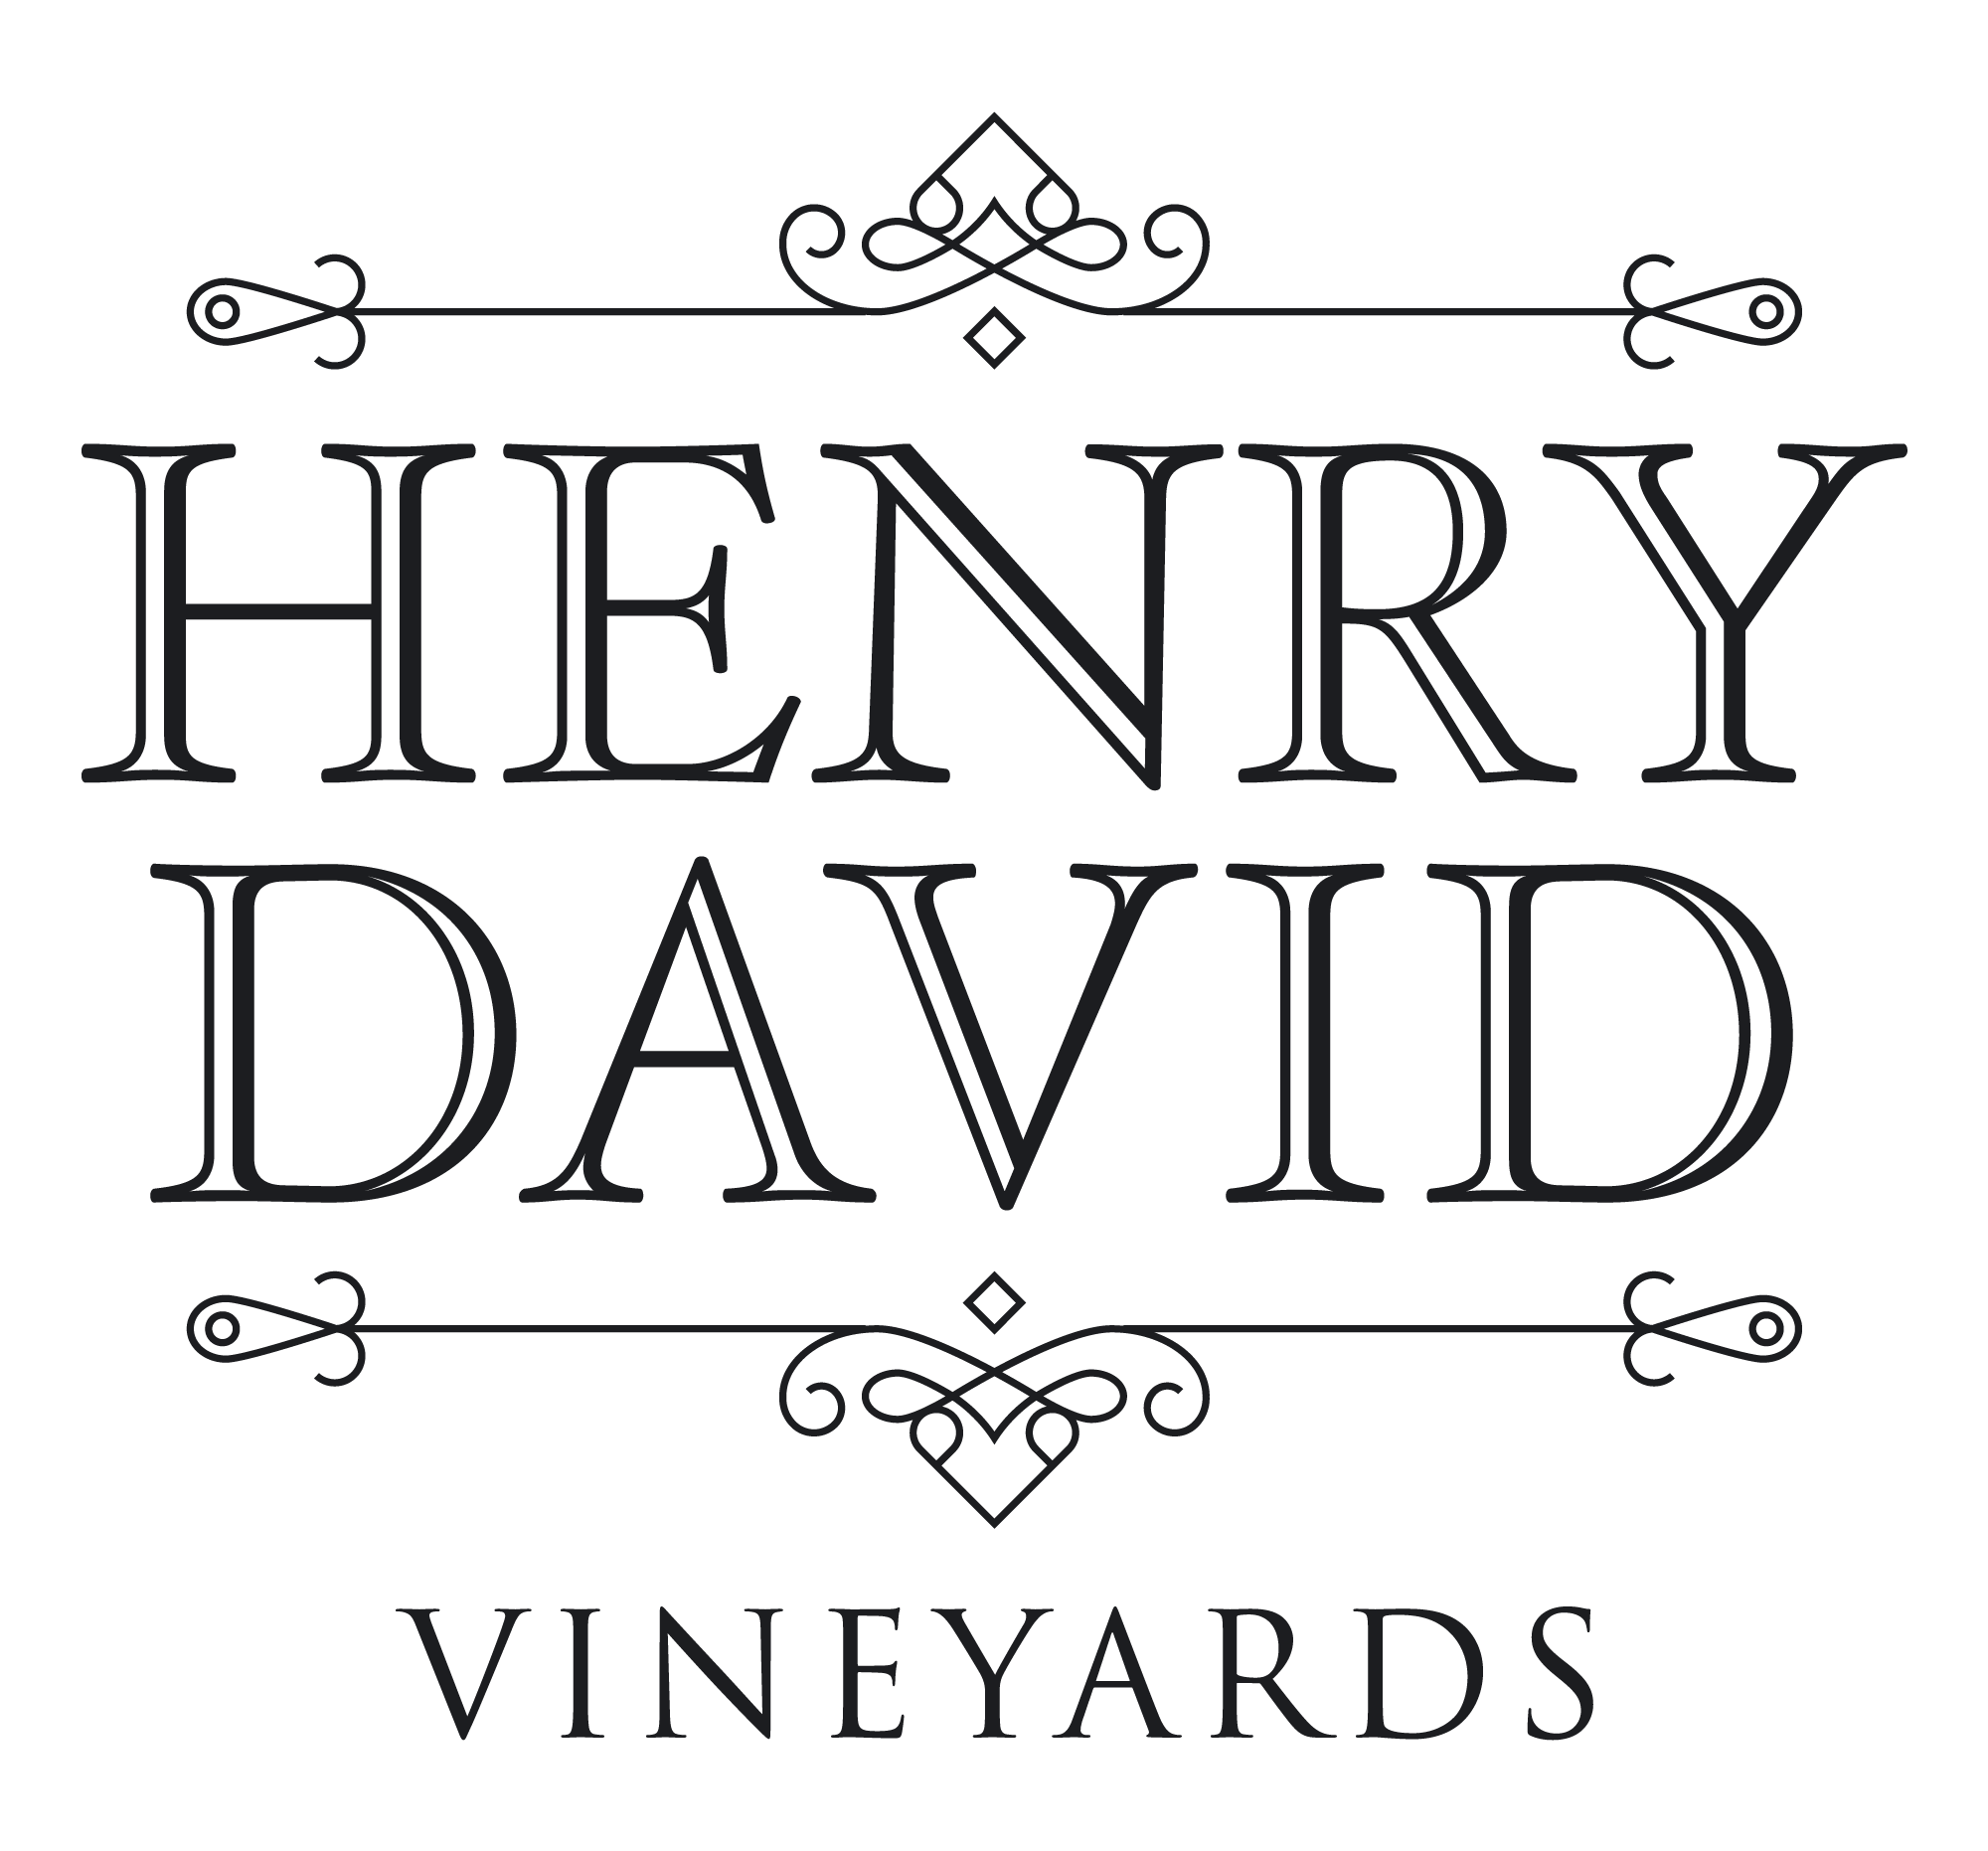 Henry David Vineyards